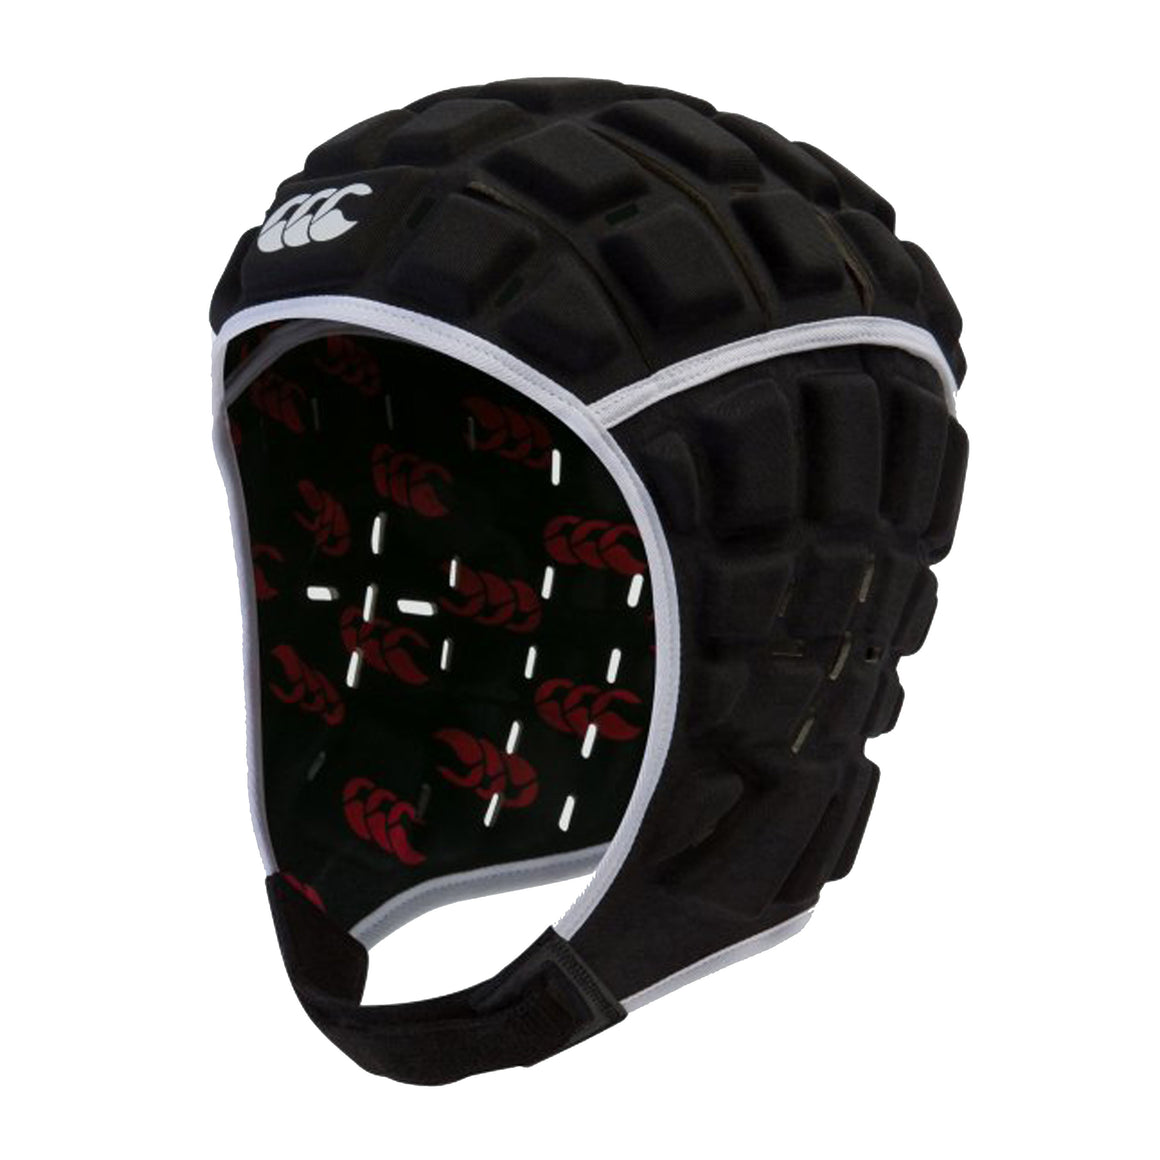 Reinforcer Headguard for Kids in Black